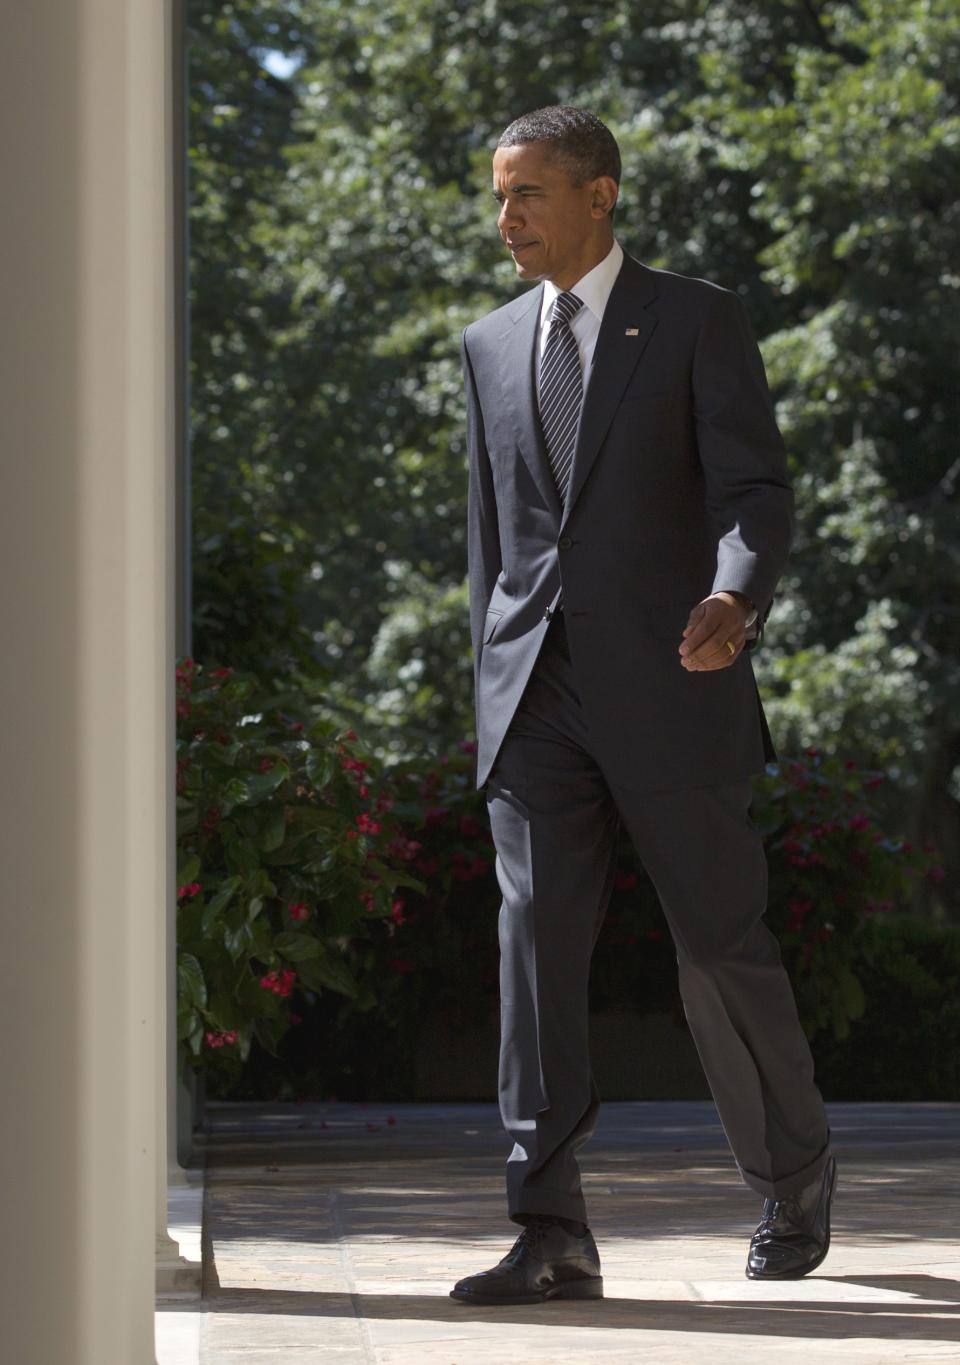 President Barack Obama walks to the Rose Garden of the White House in Washington, Wednesday, Aug. 31, 2011, to urge Congress to pass a federal highway bill. (AP Photo/Carolyn Kaster)